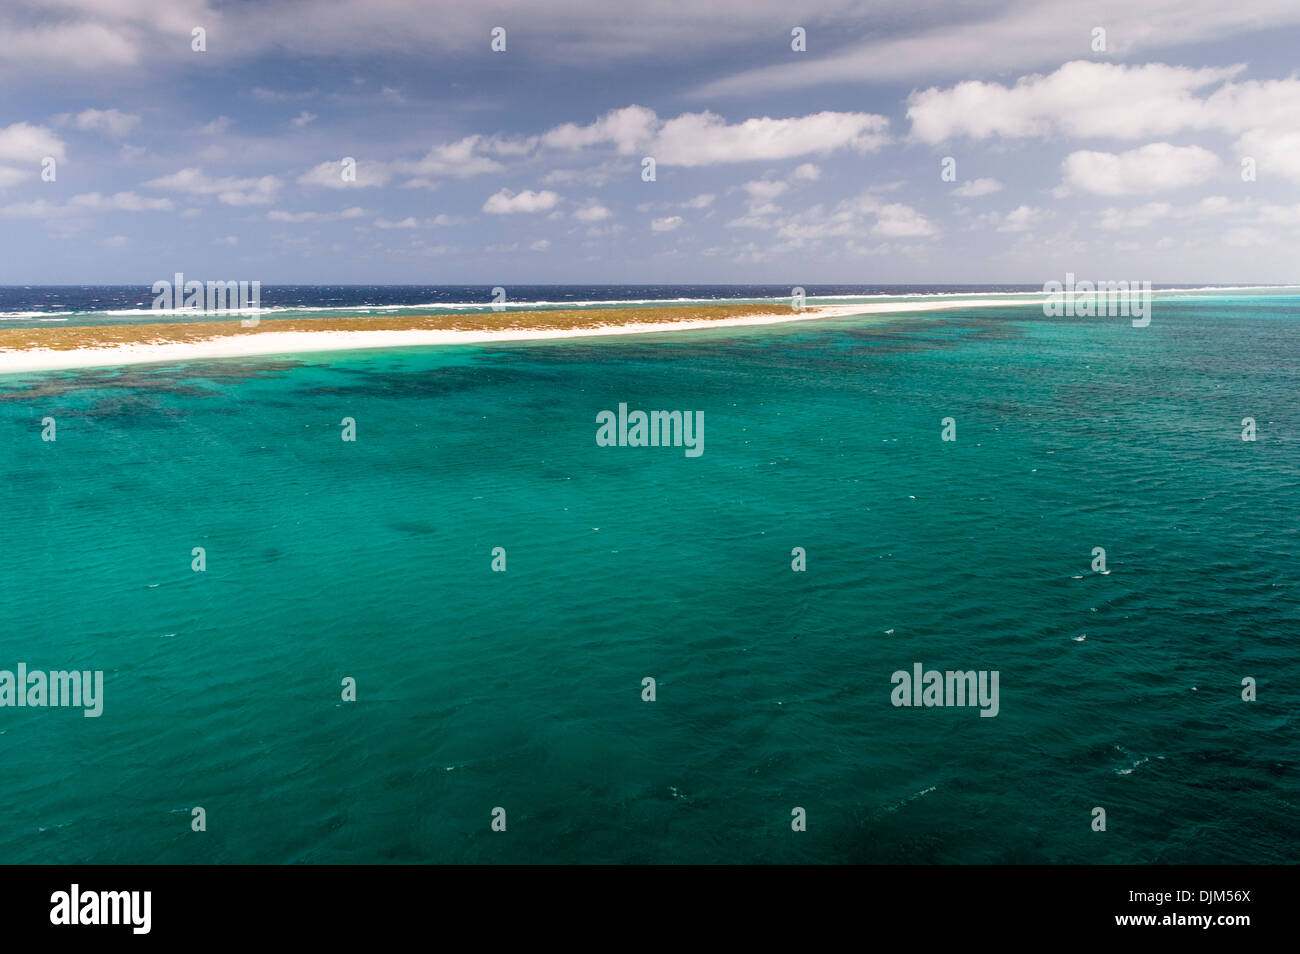 Mast top view of sandy beach on Huon Island and Huon Atoll, looking south east with the South Pacific beyond. New Caledonia - Stock Image